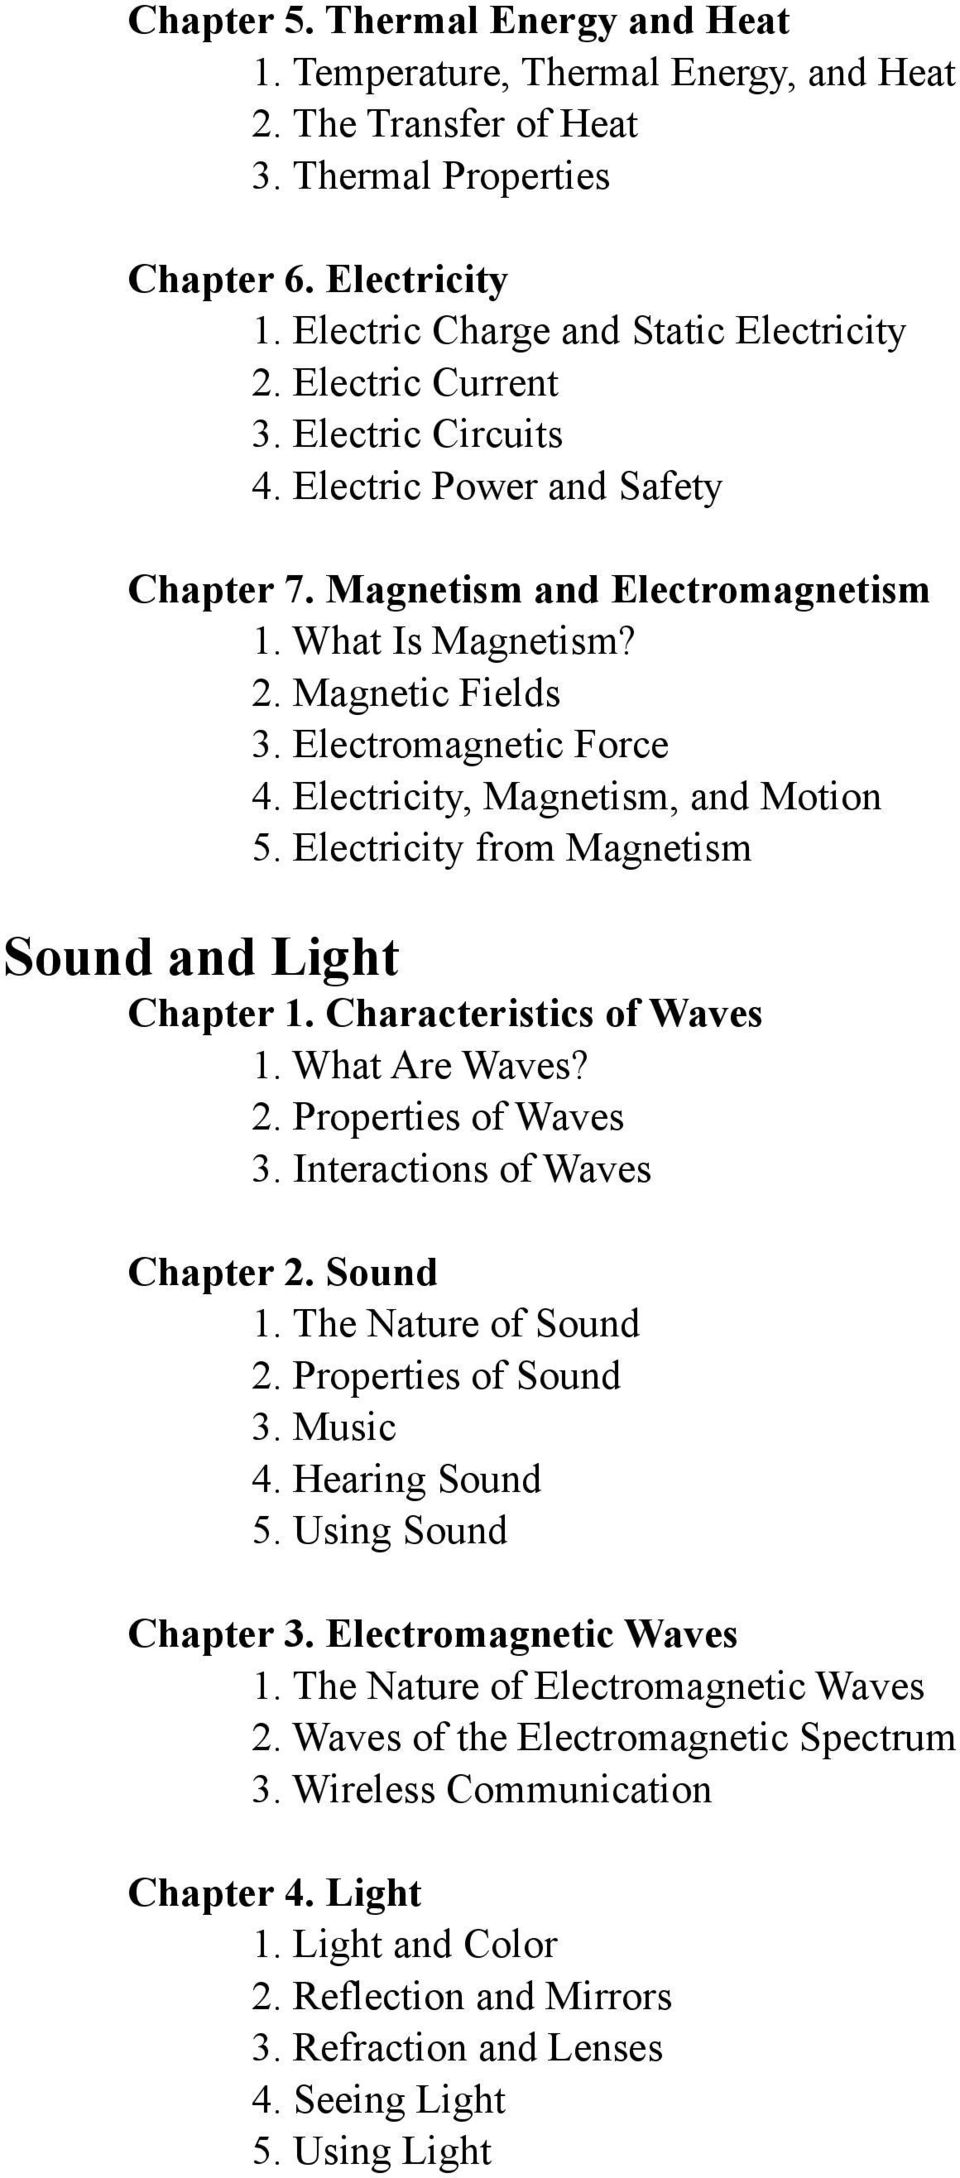 Electricity, Magnetism, and Motion 5. Electricity from Magnetism Sound and Light Chapter 1. Characteristics of Waves 1. What Are Waves? 2. Properties of Waves 3. Interactions of Waves Chapter 2.